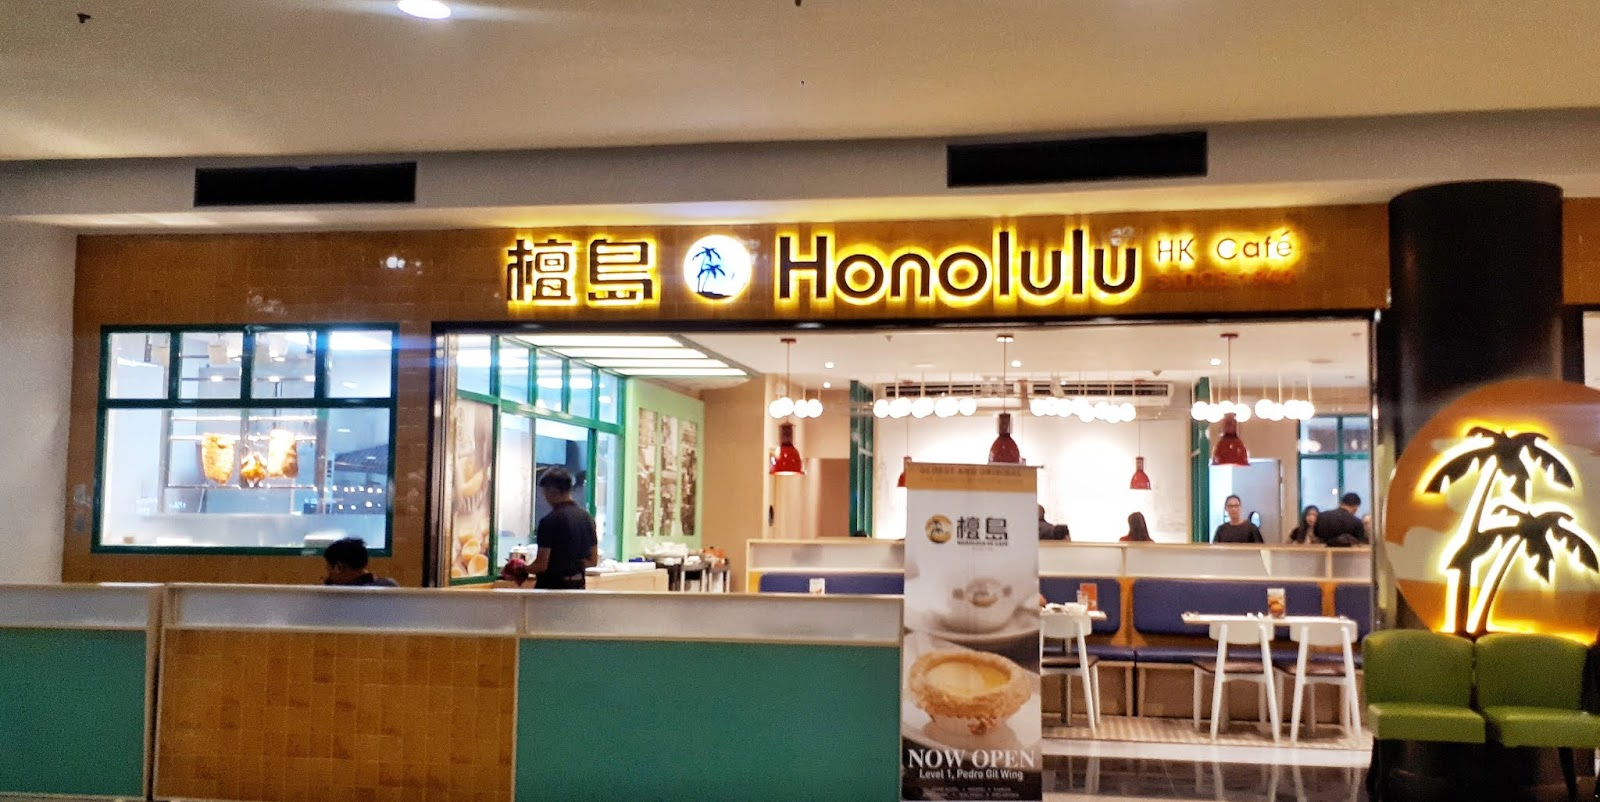 HK HONOLULU CAFE ROBINSONS MANILA BLOG REVIEW